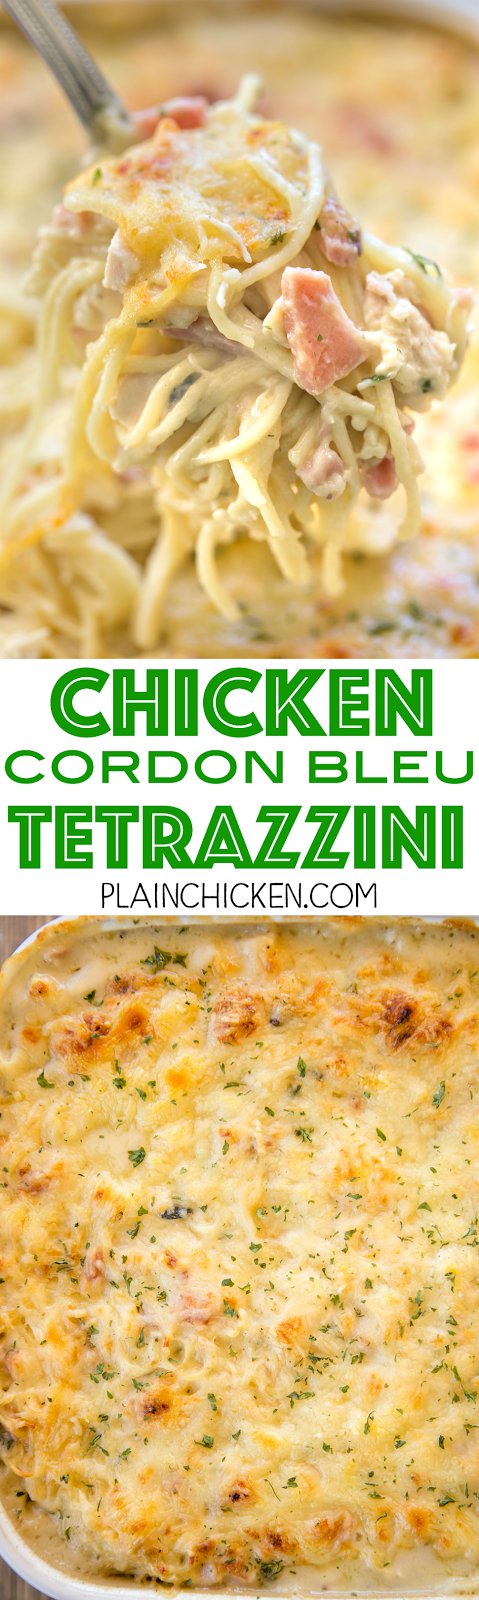 Chicken Cordon Bleu Tetrazzini - we are obsessed with this yummy casserole!! Chicken, ham, swiss cheese, mushroom soup, Alfredo sauce, chicken broth, pasta and parmesan. So quick and easy to make. Can make ahead of time and freeze for later. We make this at least once a month. It always receives rave reviews!!! We love this easy casserole recipe.